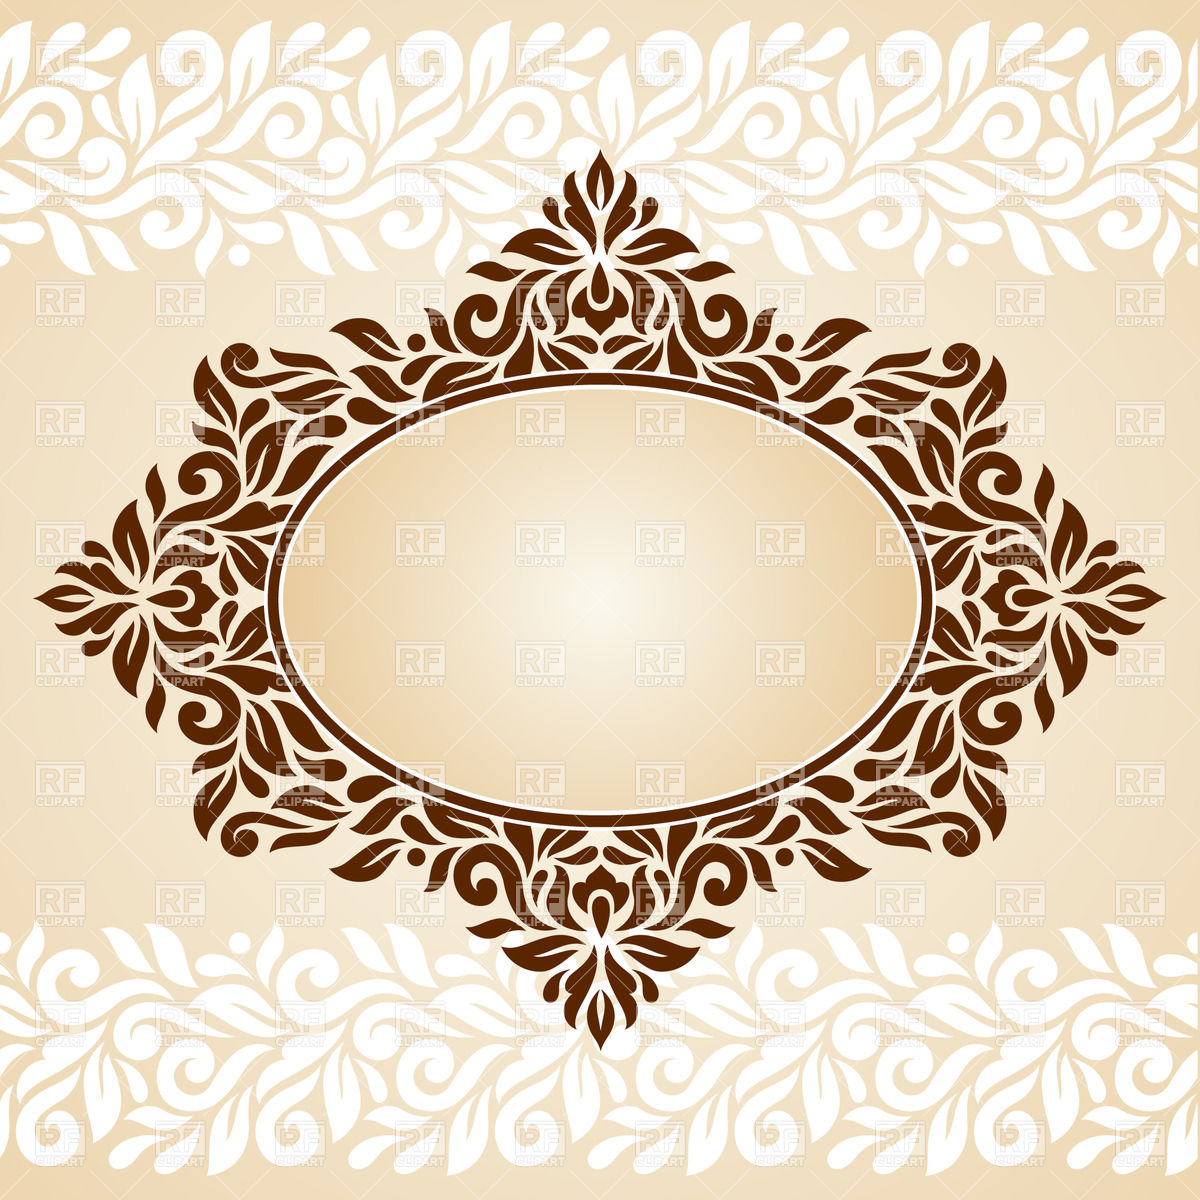 1200x1200 Oval Retro Frame With Horizontal Borders Vector Image Vector